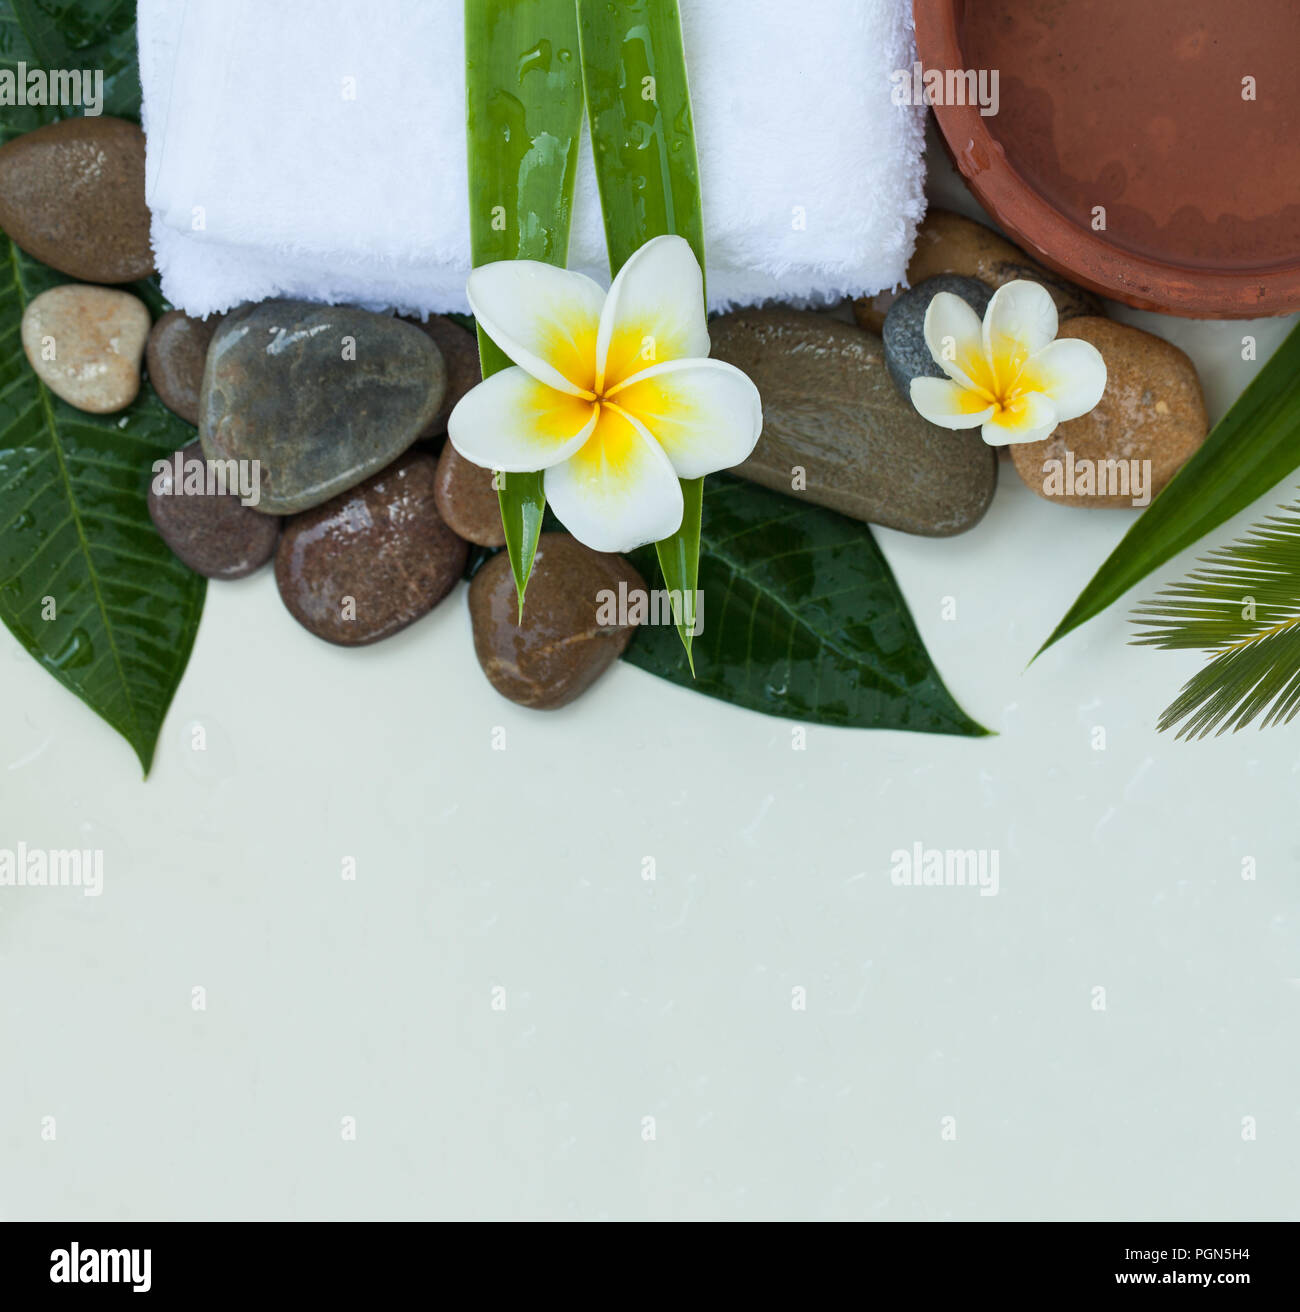 Spa or wellness setting with tropical flowers, bowl of water, towel and dark stones - Stock Image